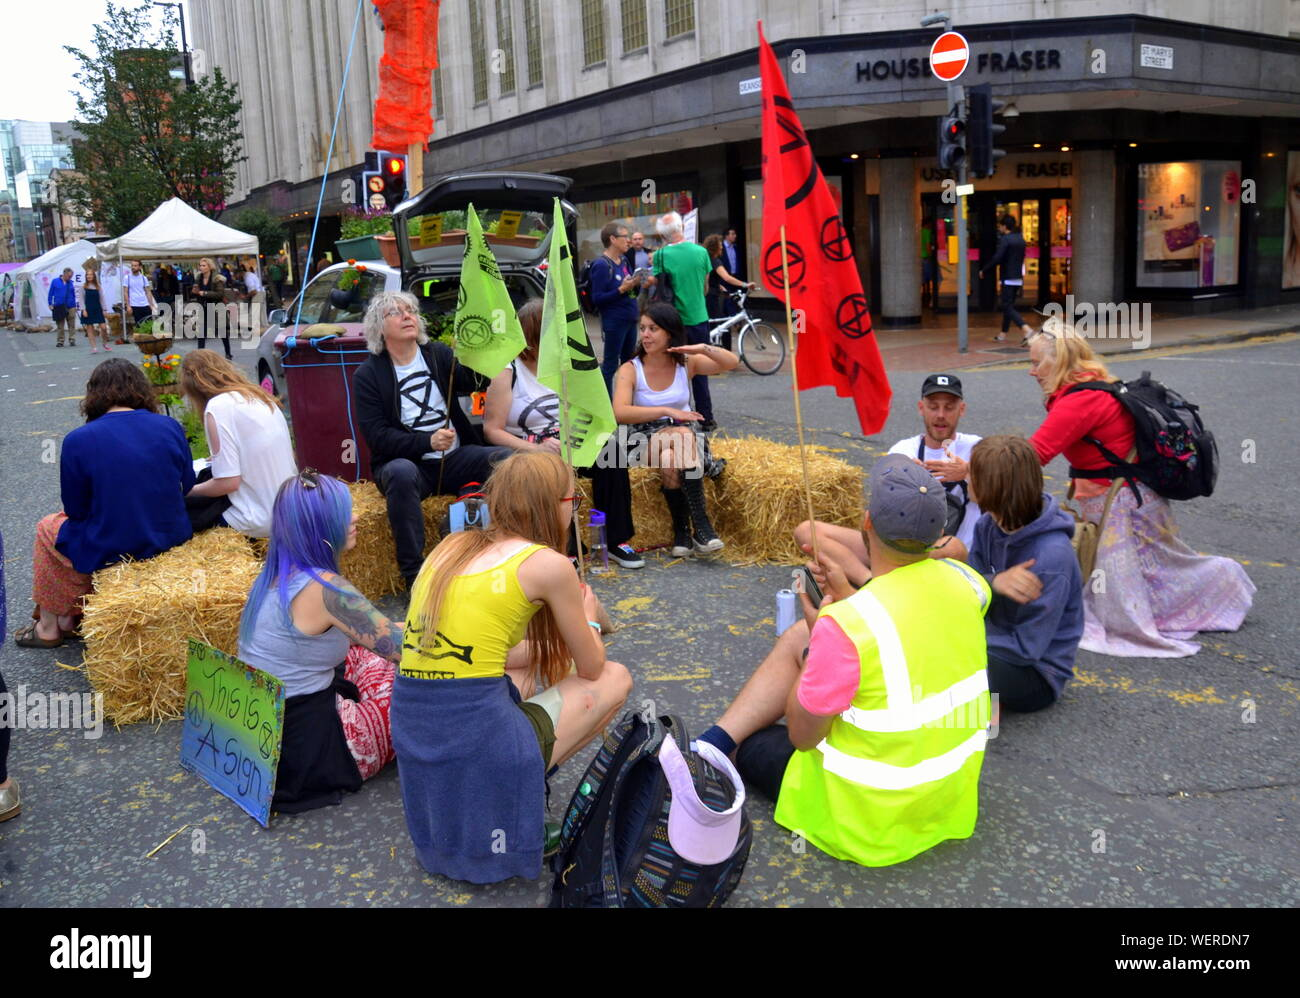 A group sits on straw bales outside Kendals store as Northern Rebellion protesters, part of the global movement Extinction Rebellion, blocked Deansgate and its side streets in central Manchester, uk, on 30th August, 2019 at the start of a four day protest. The protesters are demanding that the Government tells the truth about the climate emergency, takes action now, and is led by a citizens' assembly on climate change. Stock Photo